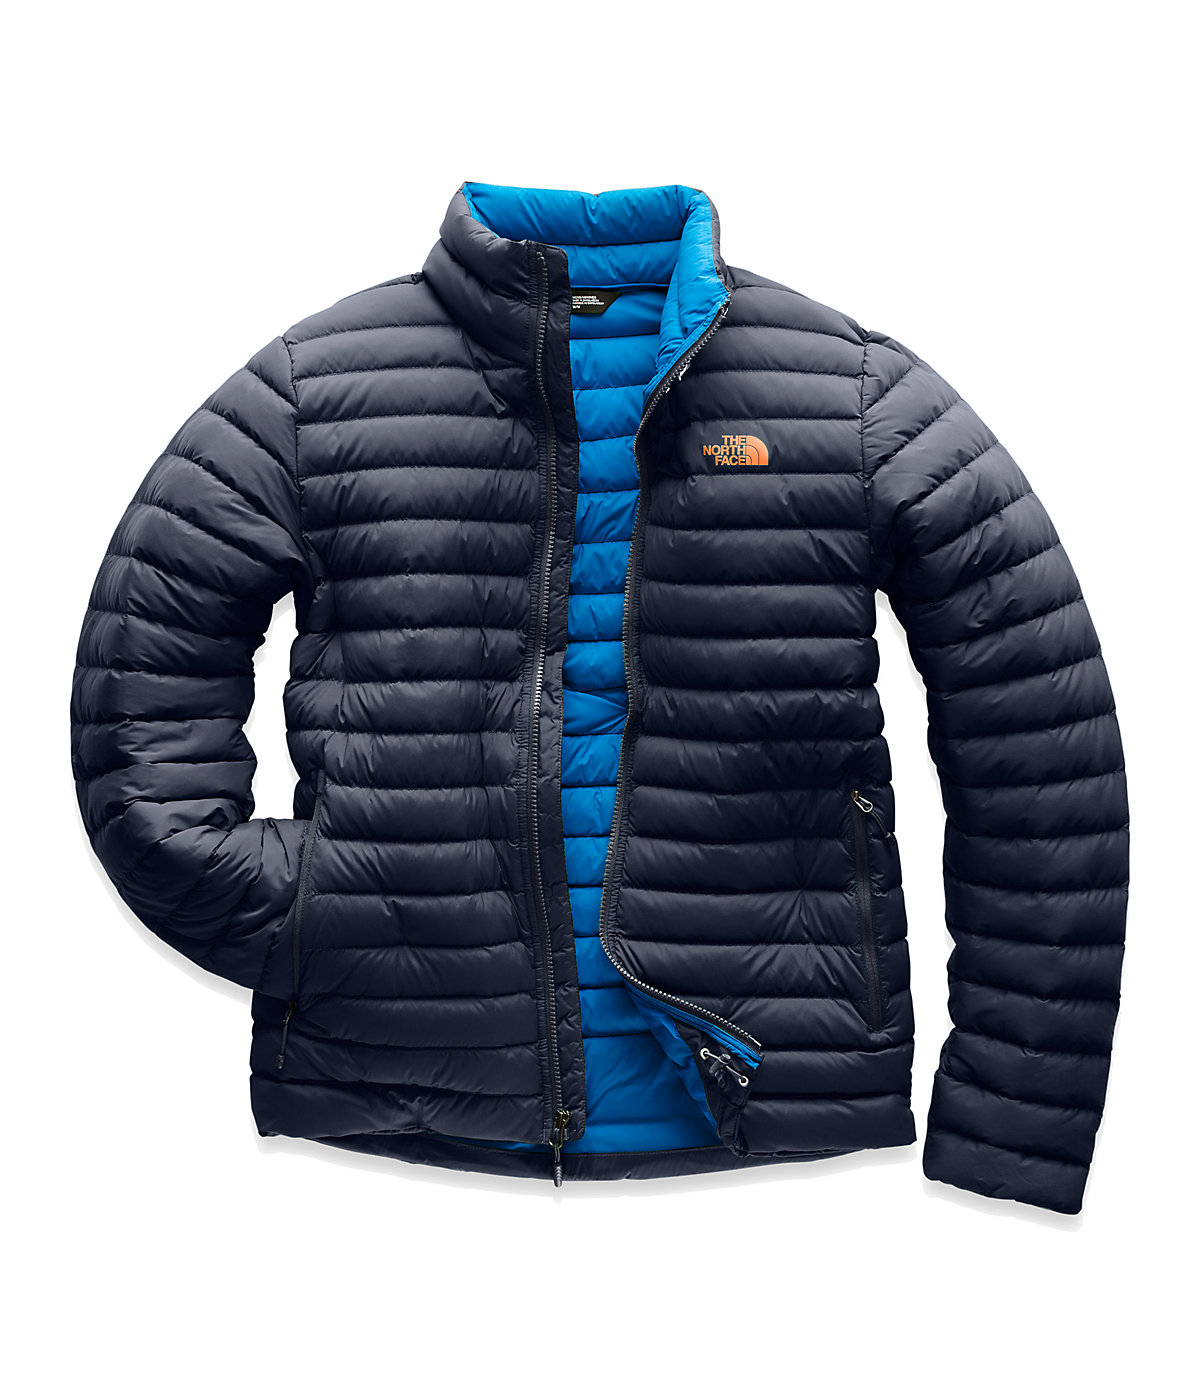 992cf8b35e The North Face Men s Stretch Down Jacket in 2019